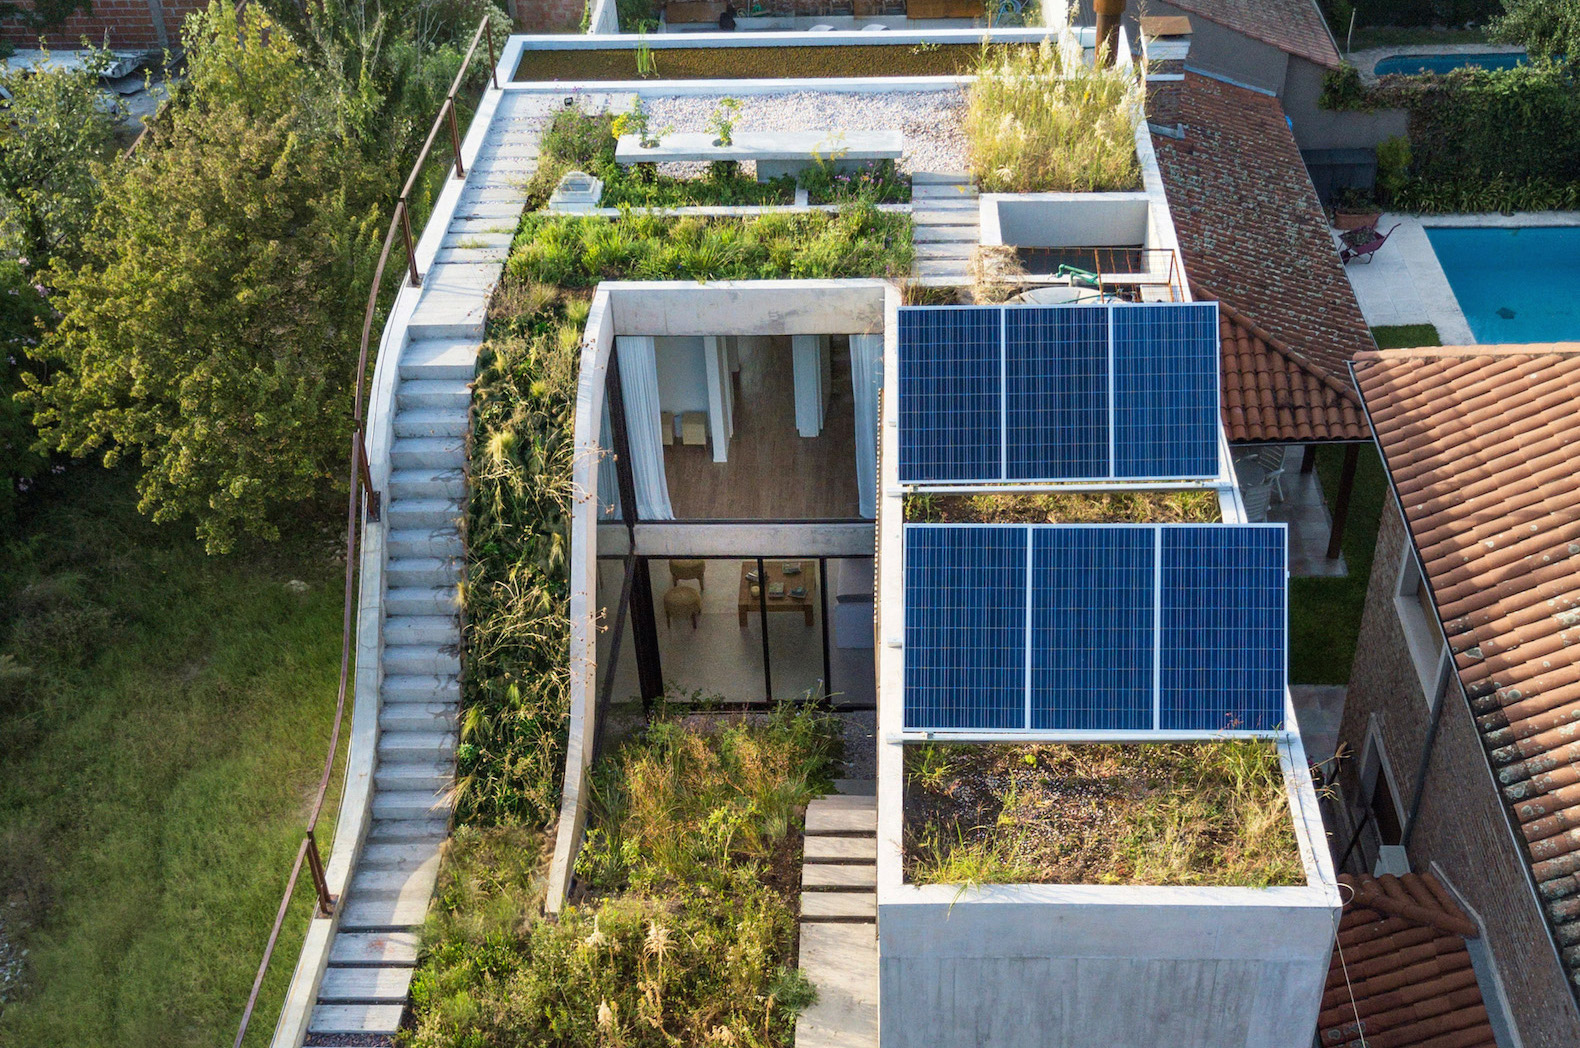 Luxurious solar home wraps around a sloped green roof